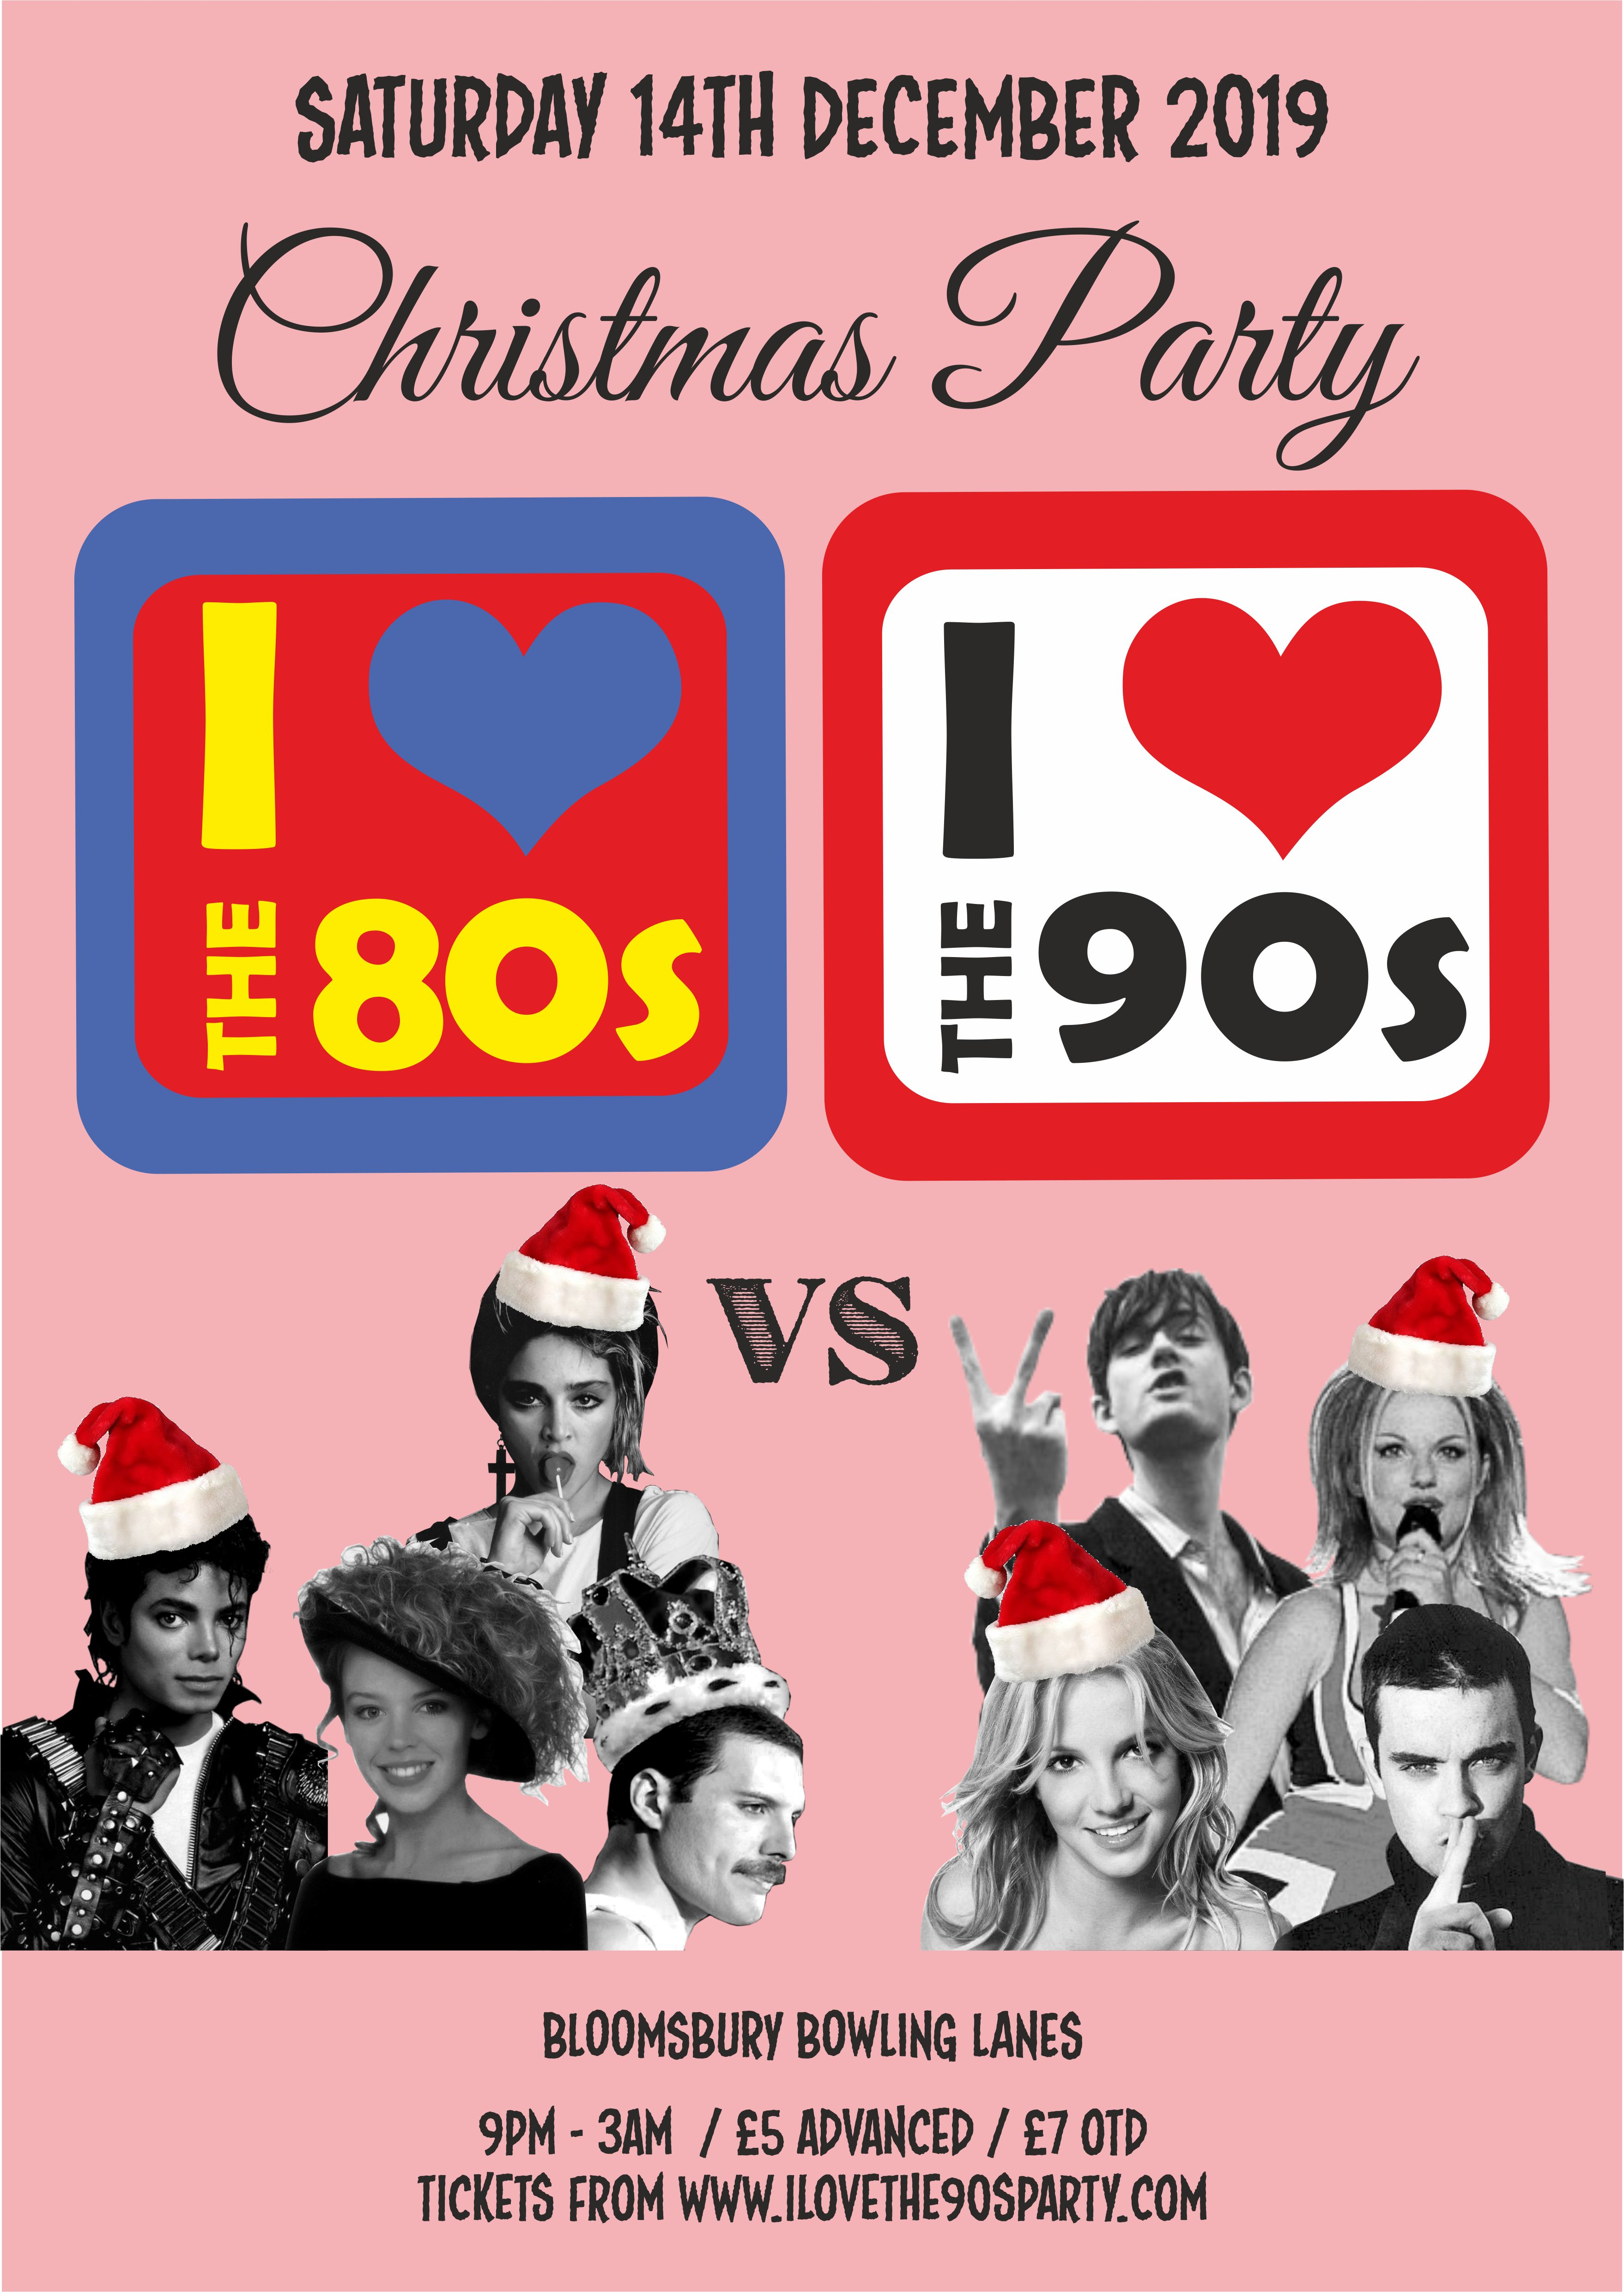 80vs90s_bloomsbury lanes_A3 POSTER_christmas copy